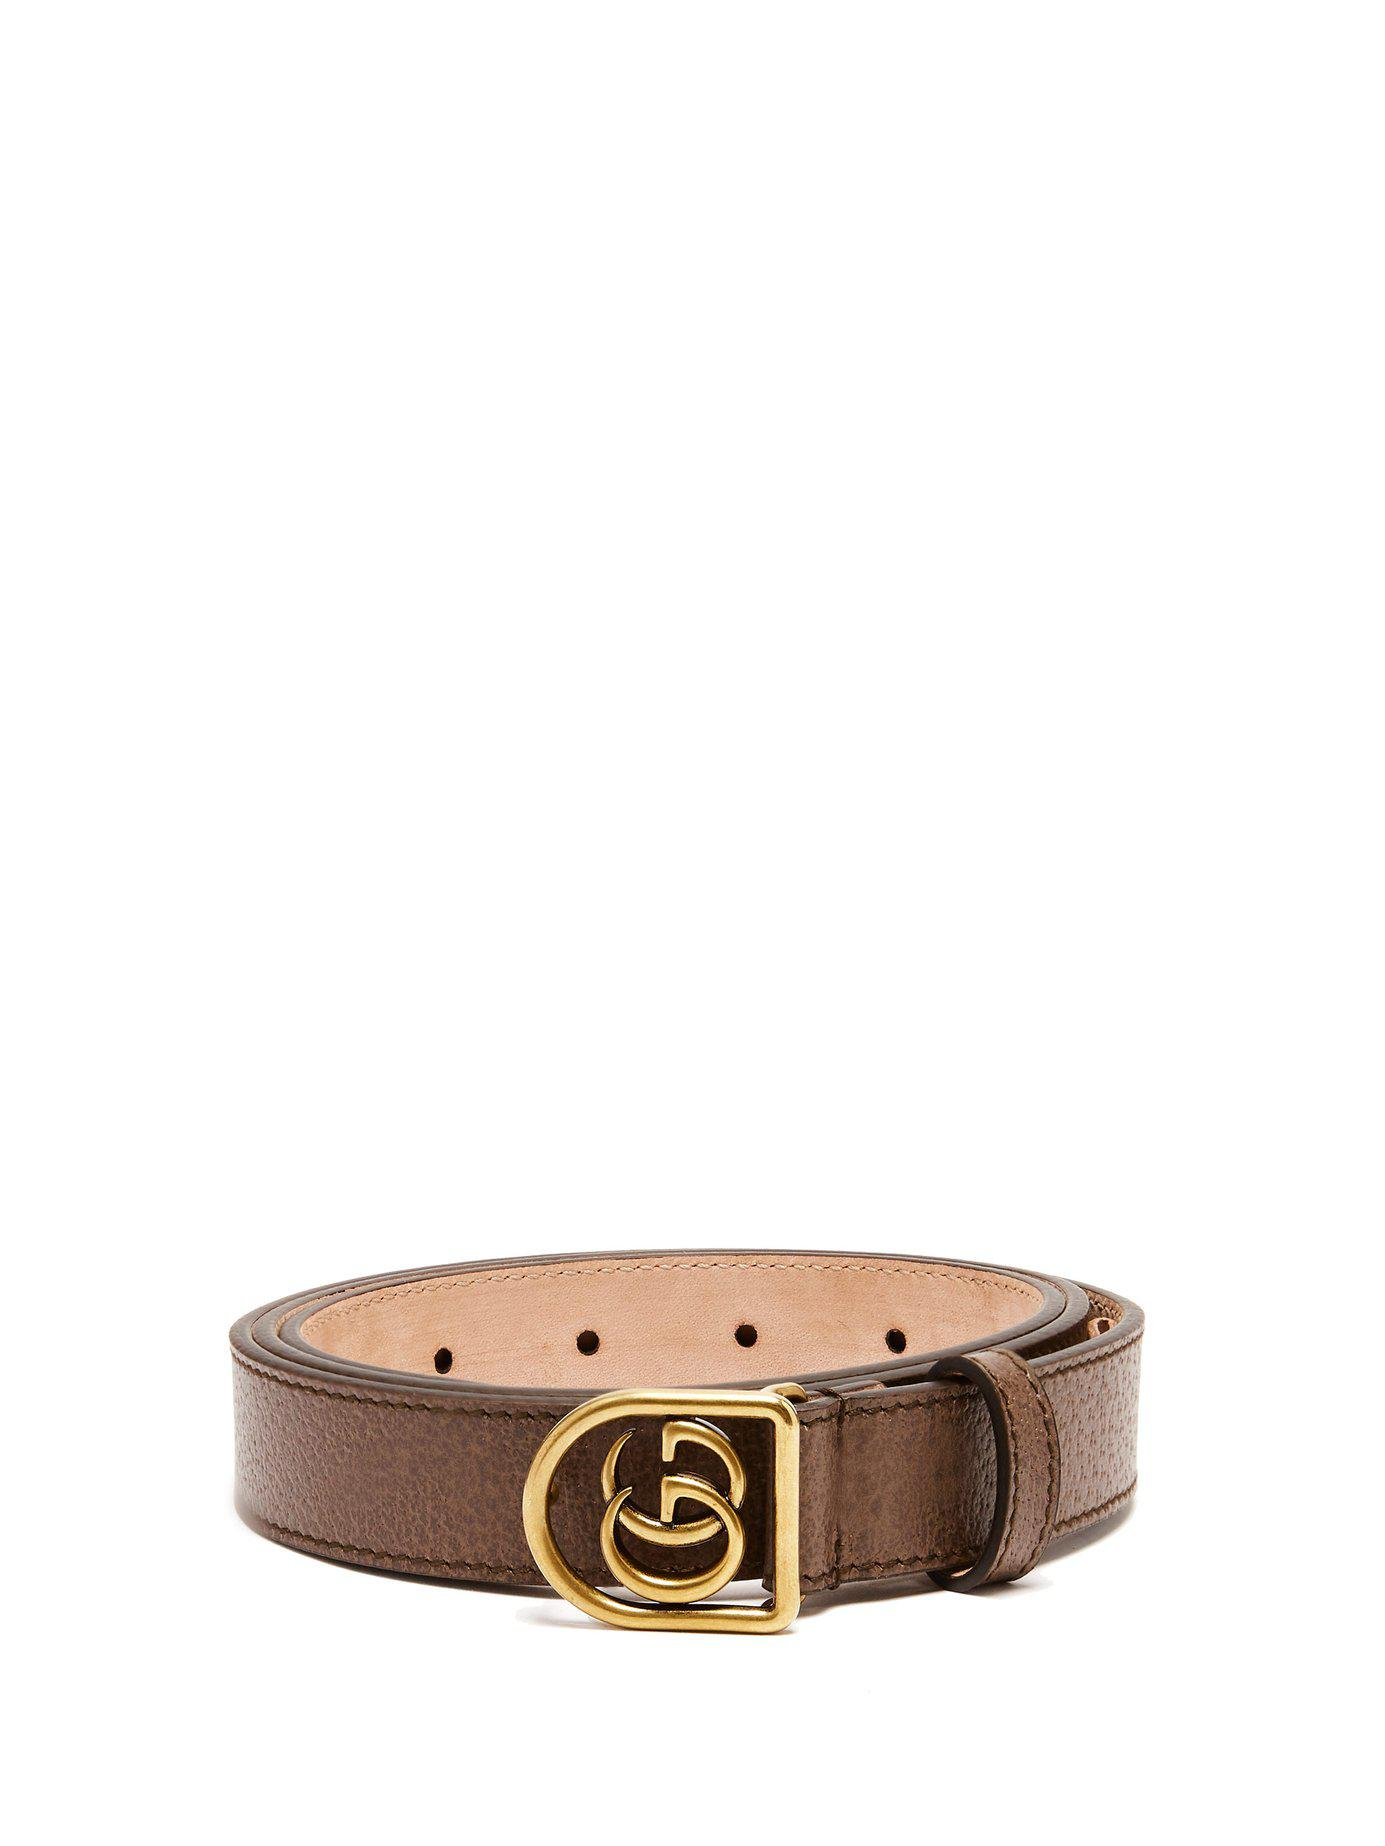 977f03e1753 Gucci Leather Belt With Double G Buckle in Brown for Men - Save 53 ...